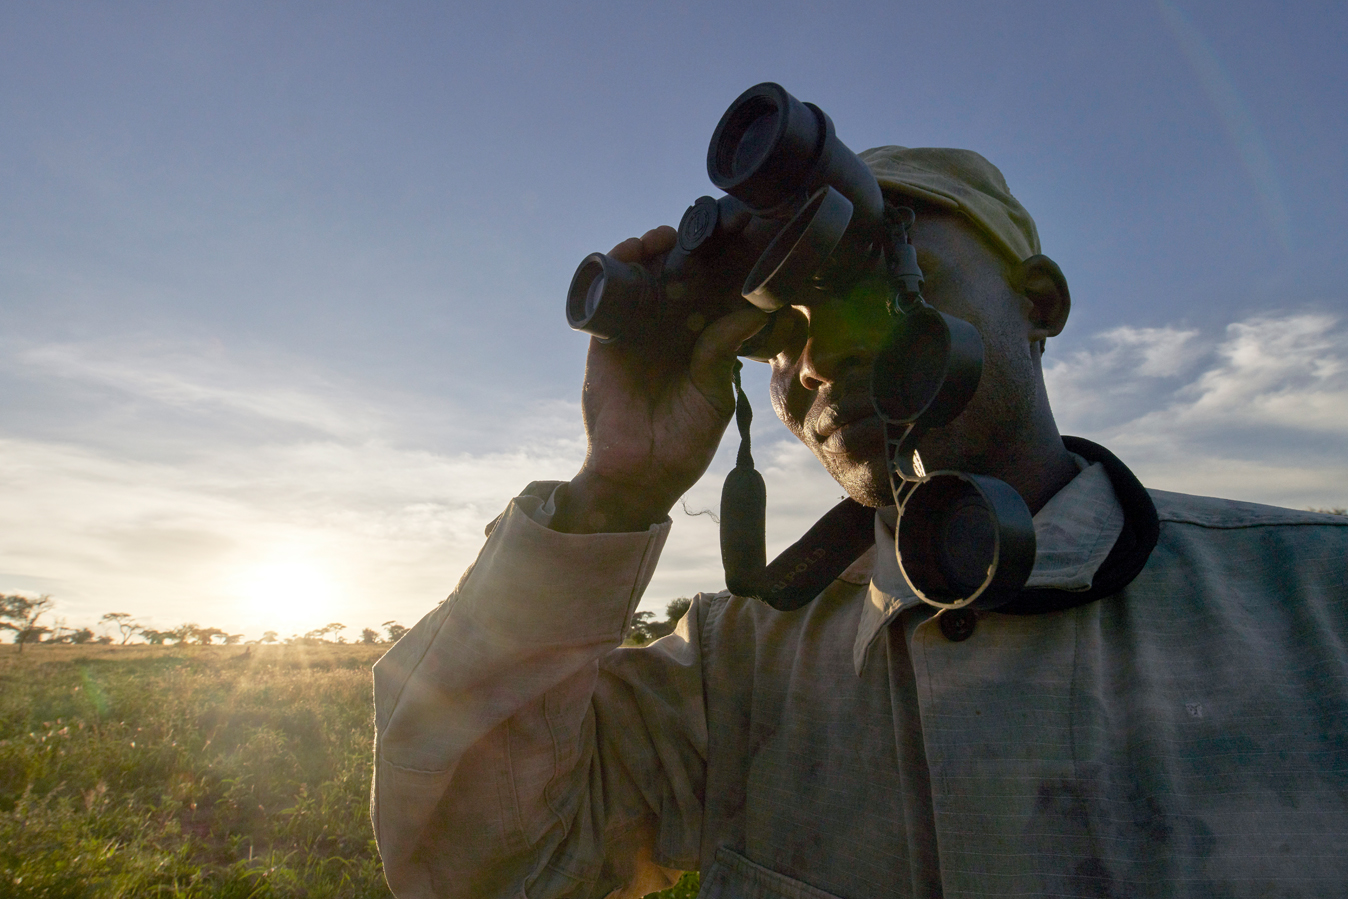 A community game scout monitors wildlife in Tanzania